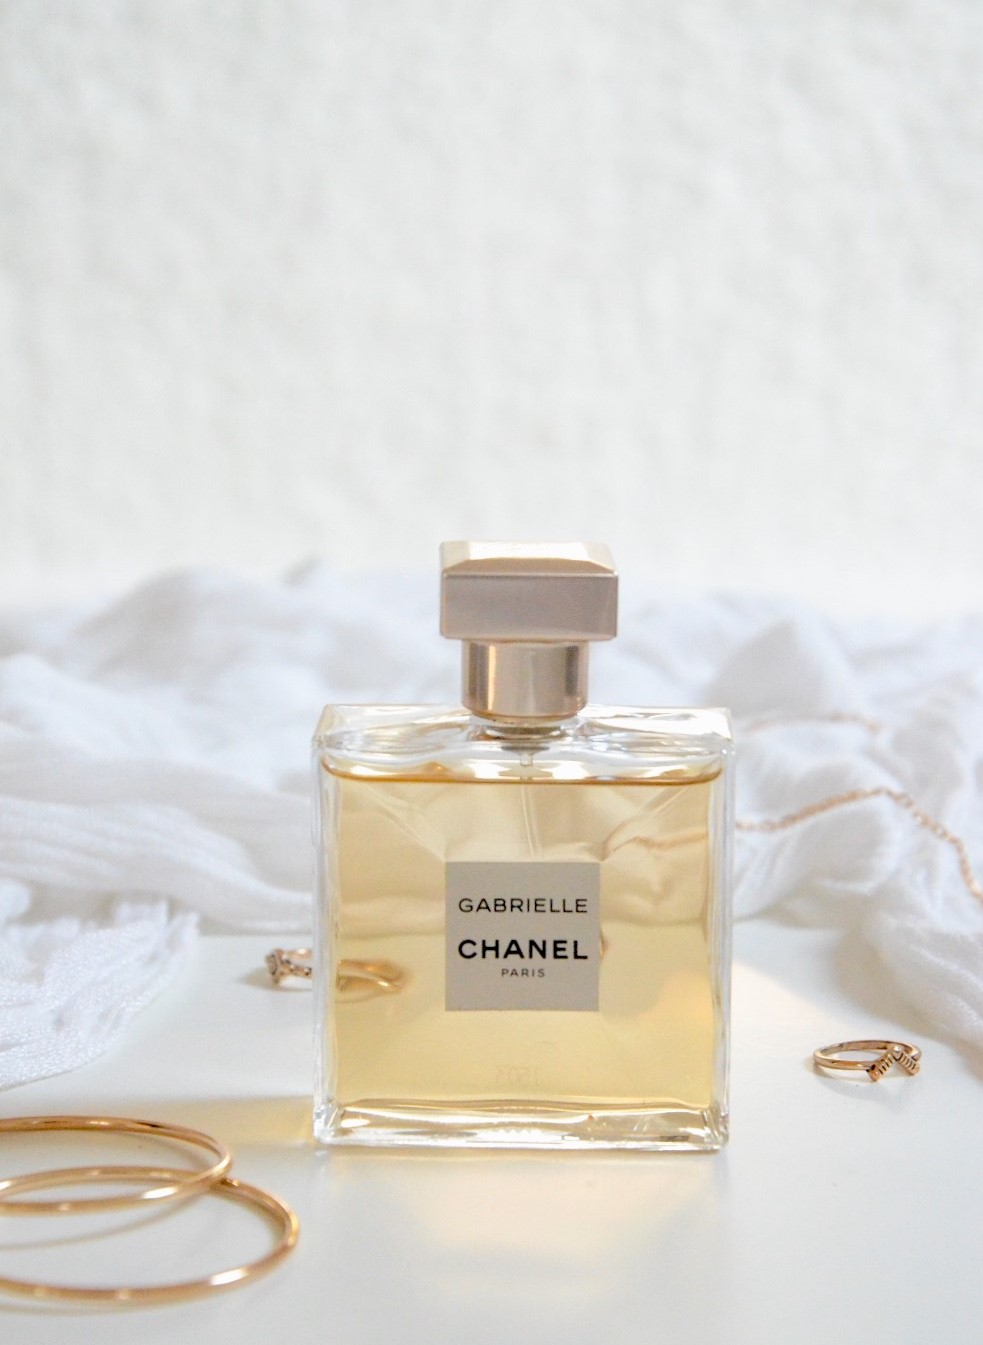 chanel gabrielle perfume review 365beautytips. Black Bedroom Furniture Sets. Home Design Ideas